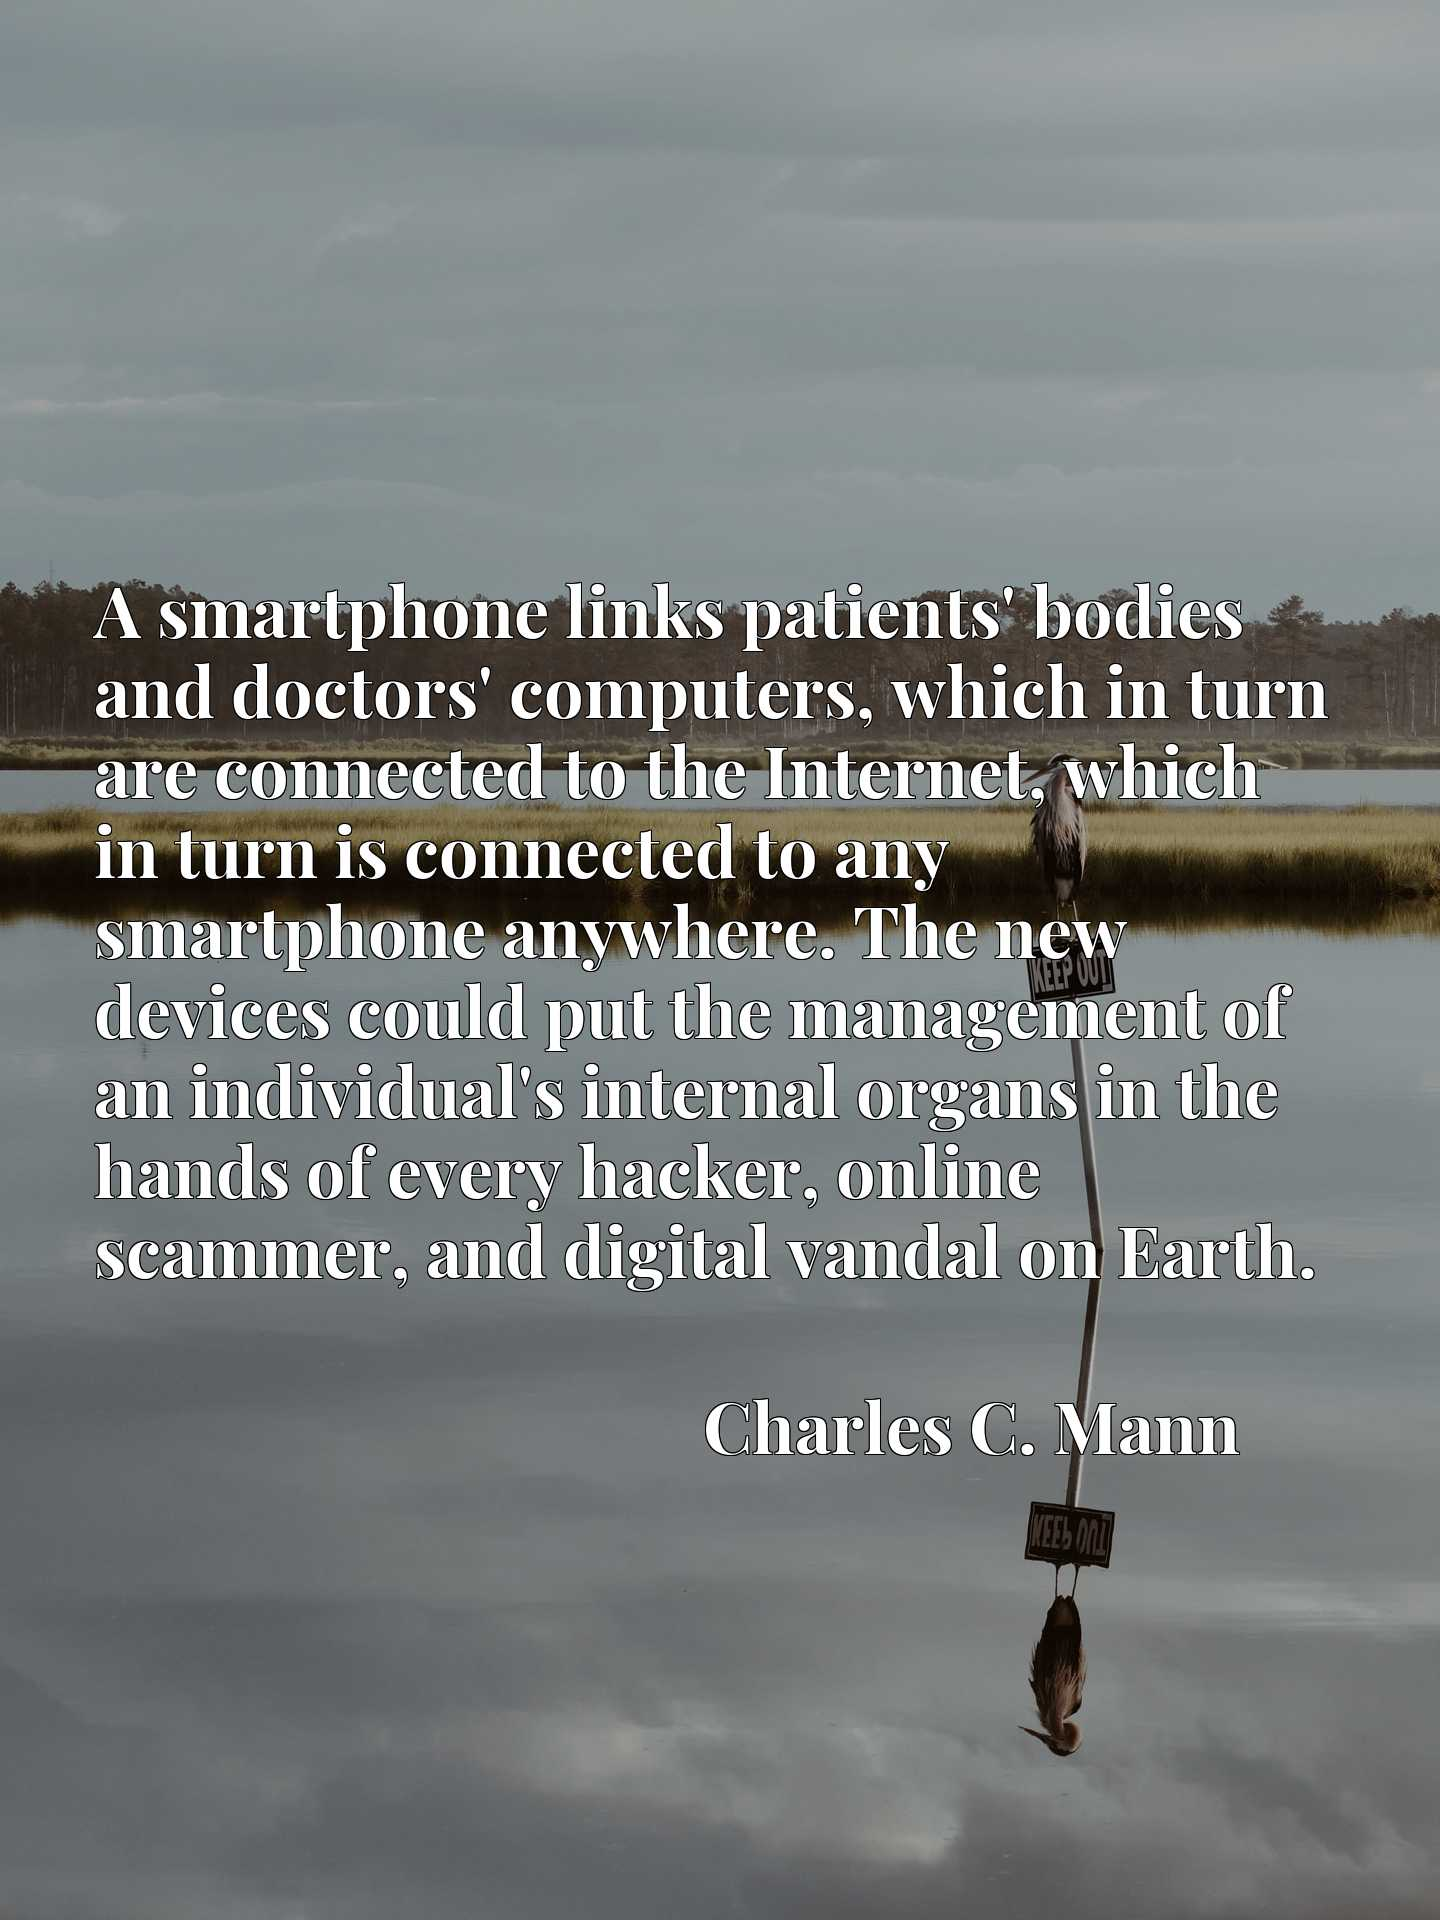 A smartphone links patients' bodies and doctors' computers, which in turn are connected to the Internet, which in turn is connected to any smartphone anywhere. The new devices could put the management of an individual's internal organs in the hands of every hacker, online scammer, and digital vandal on Earth.